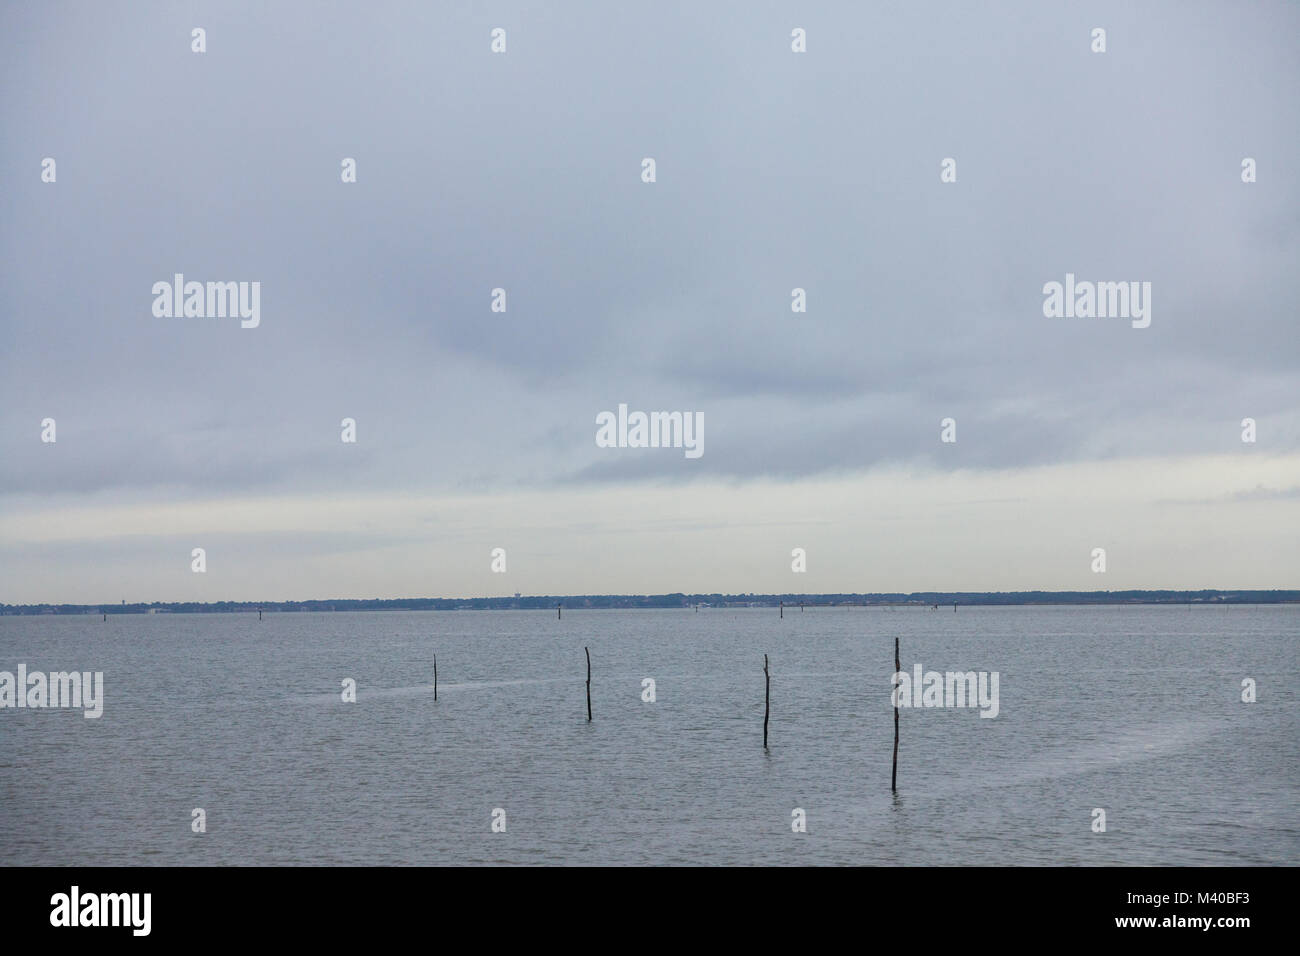 Atlantic ocean in Gujan Mestras, Bassin d'Arachon, France, during a storm on a cloudy rainy afternoon. This - Stock Image